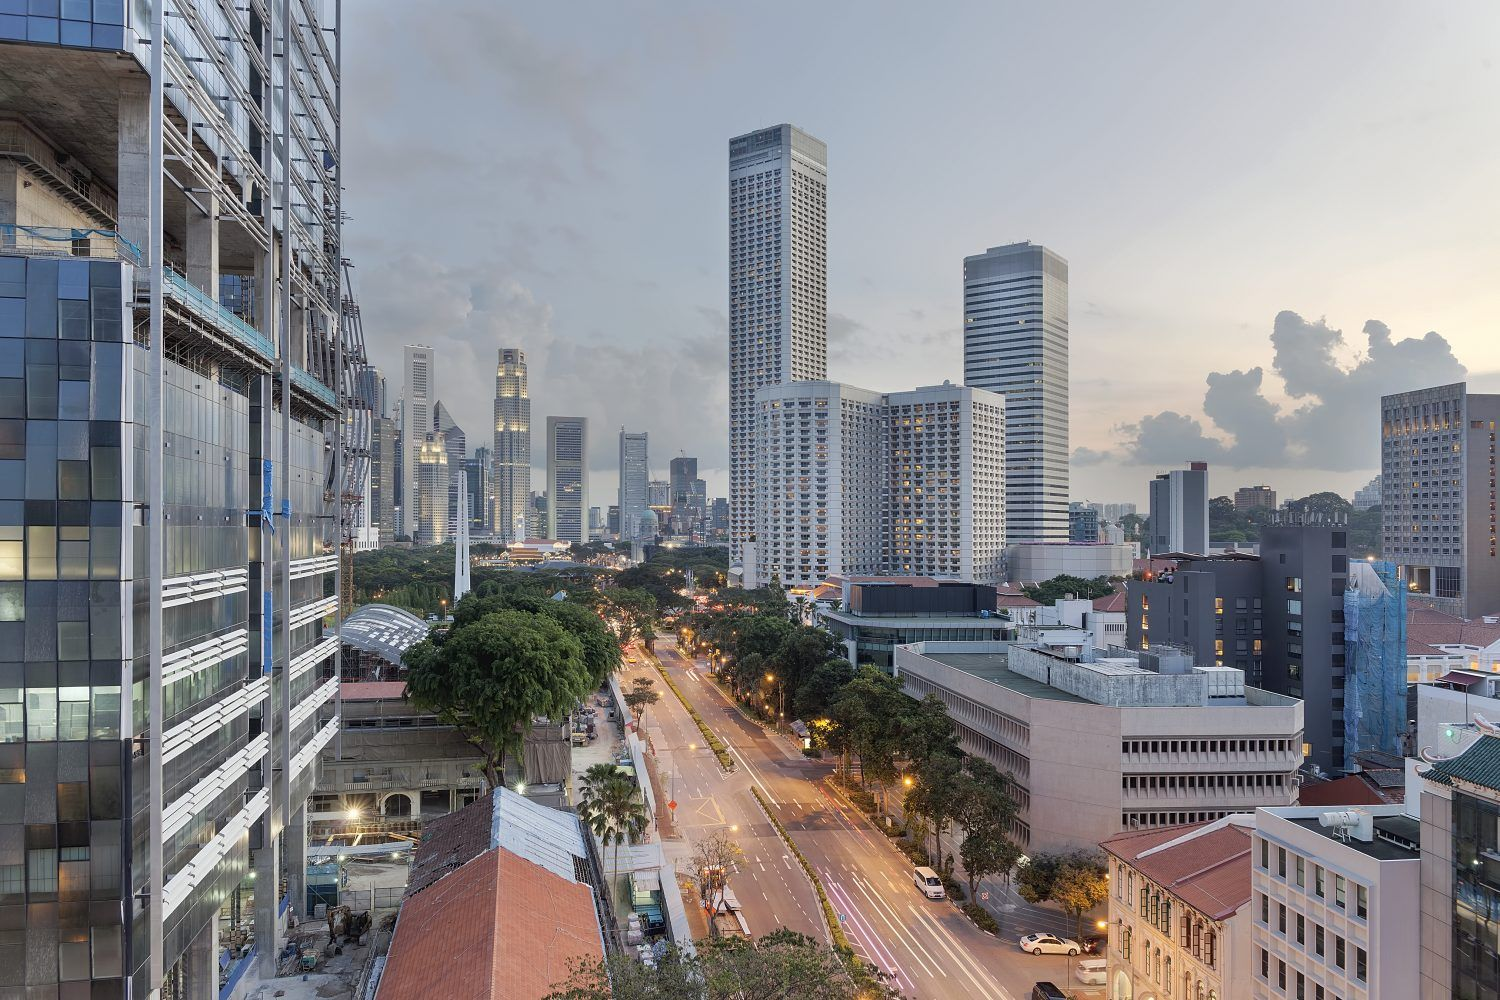 Singapore Commercial Property Market Activity leaps by 200%